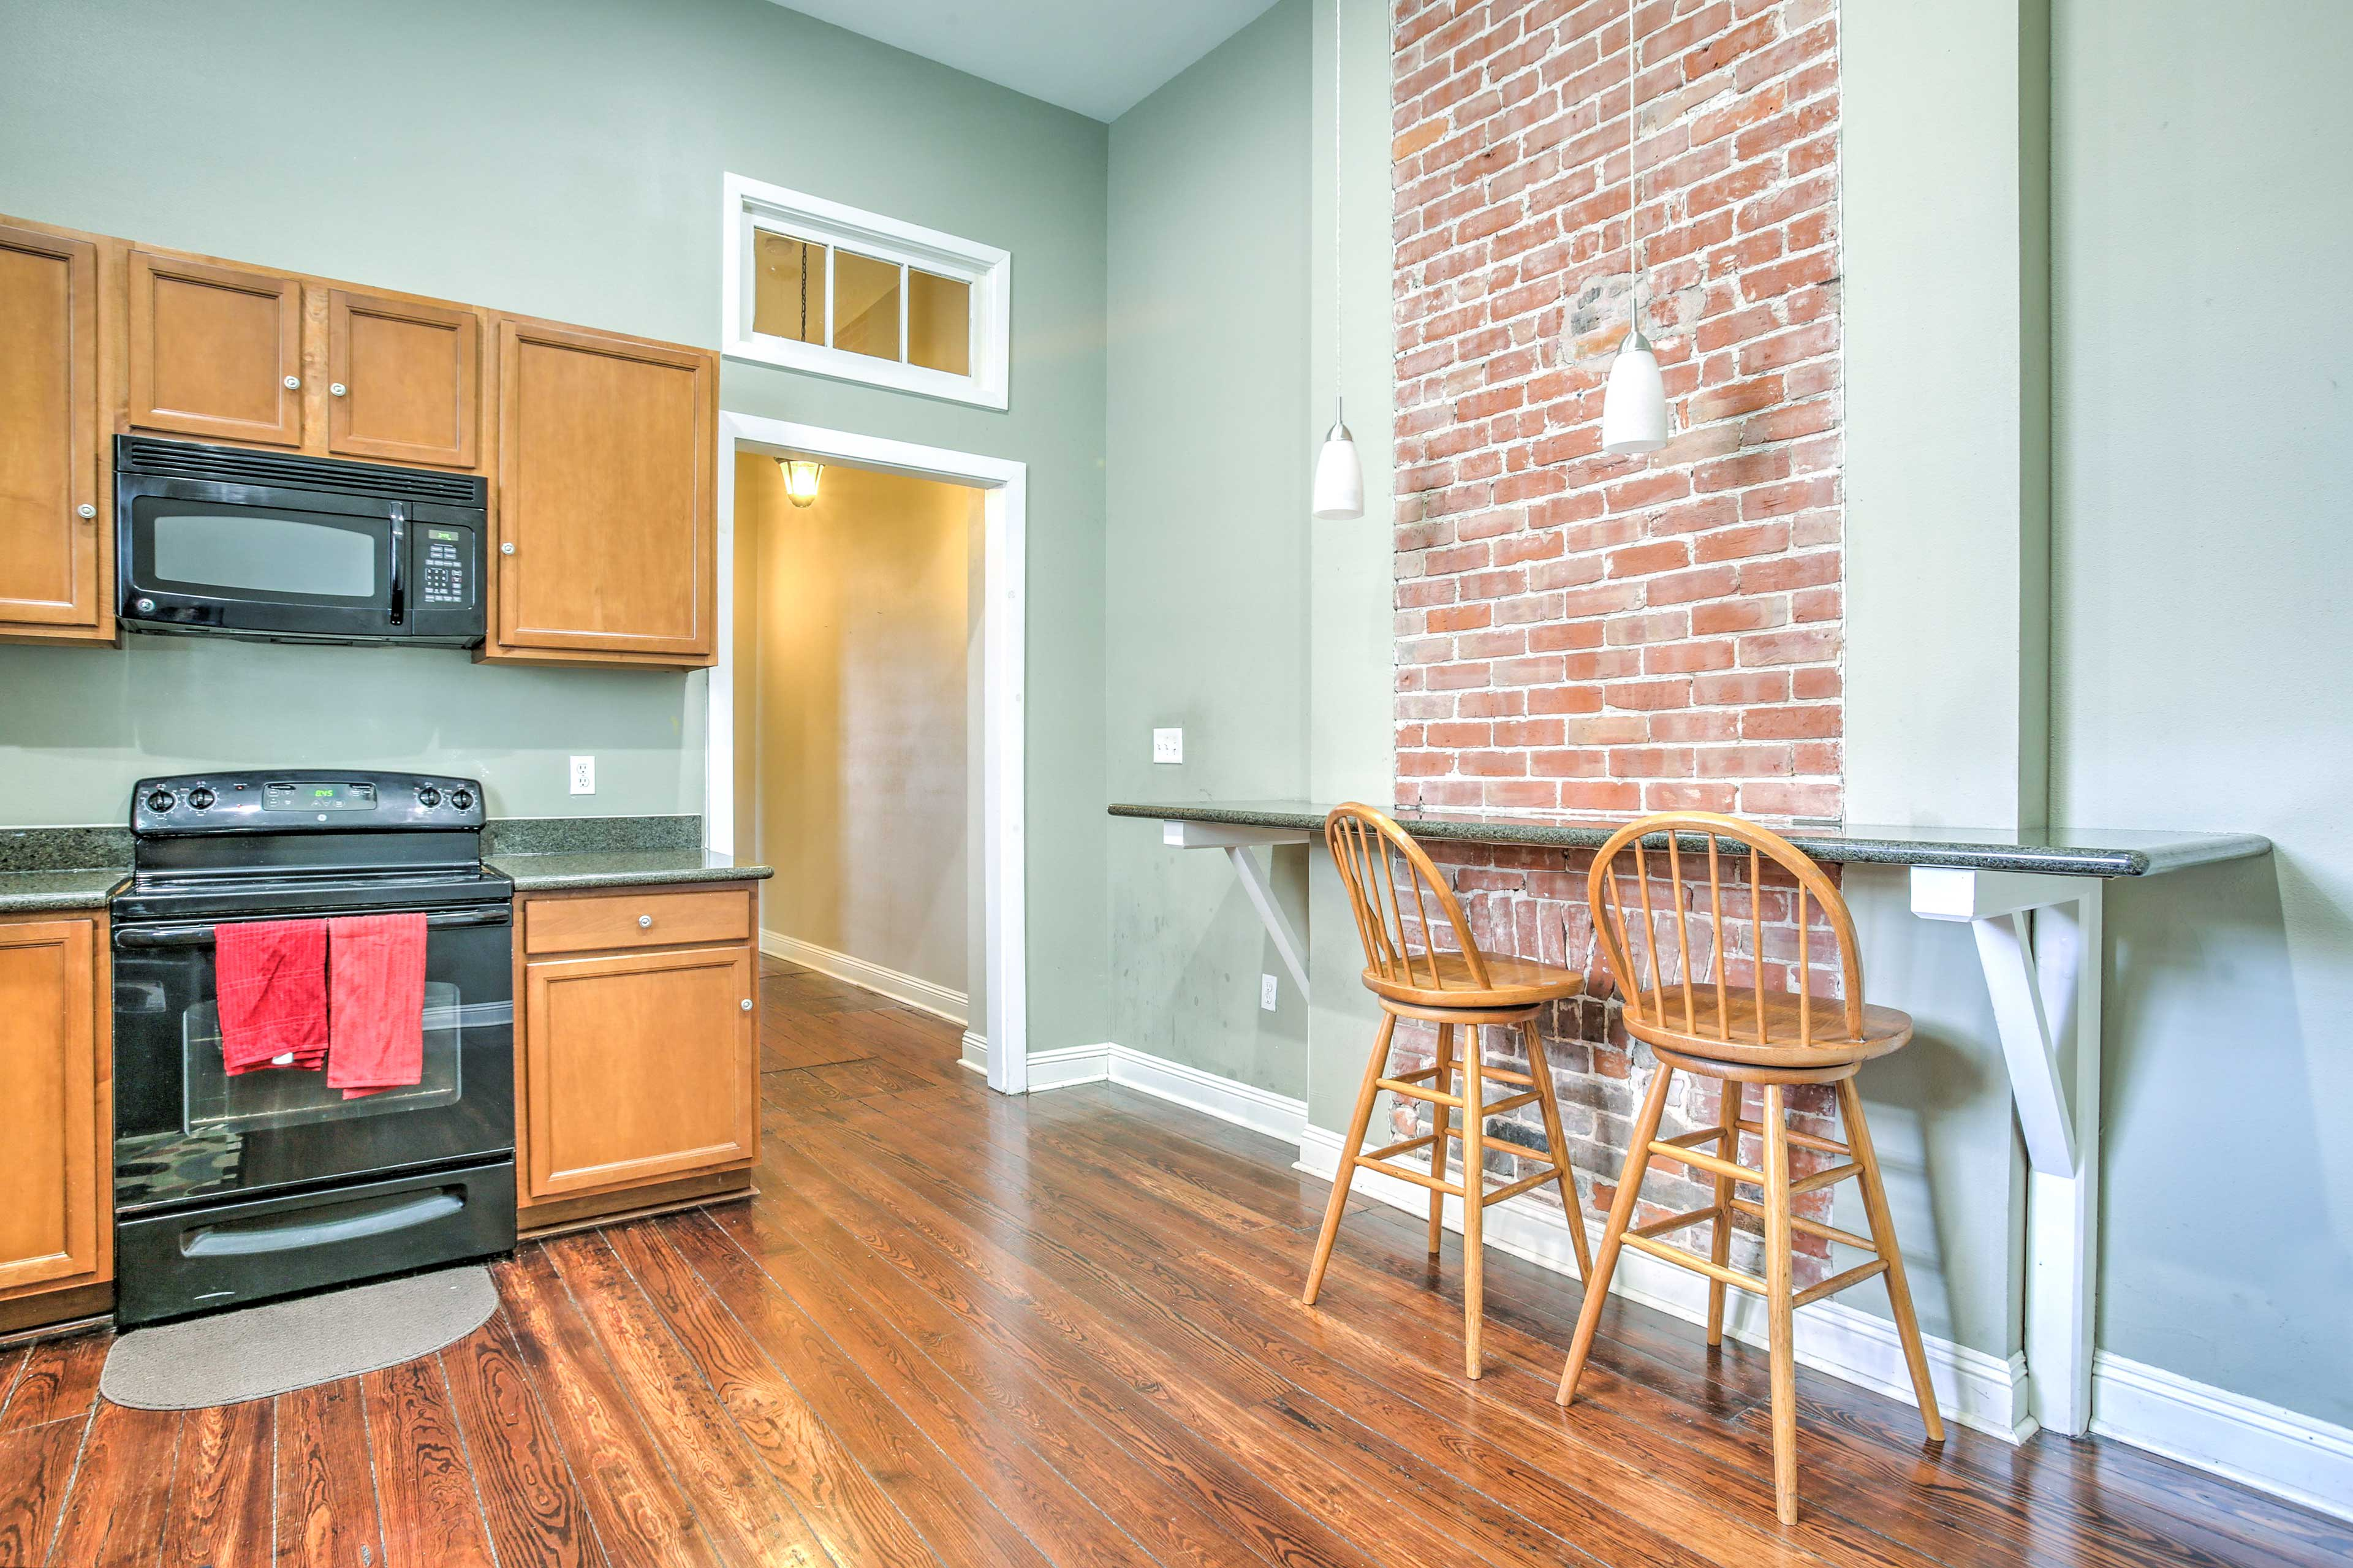 A built-in counter and exposed brick wall detail the fully equipped kitchen.